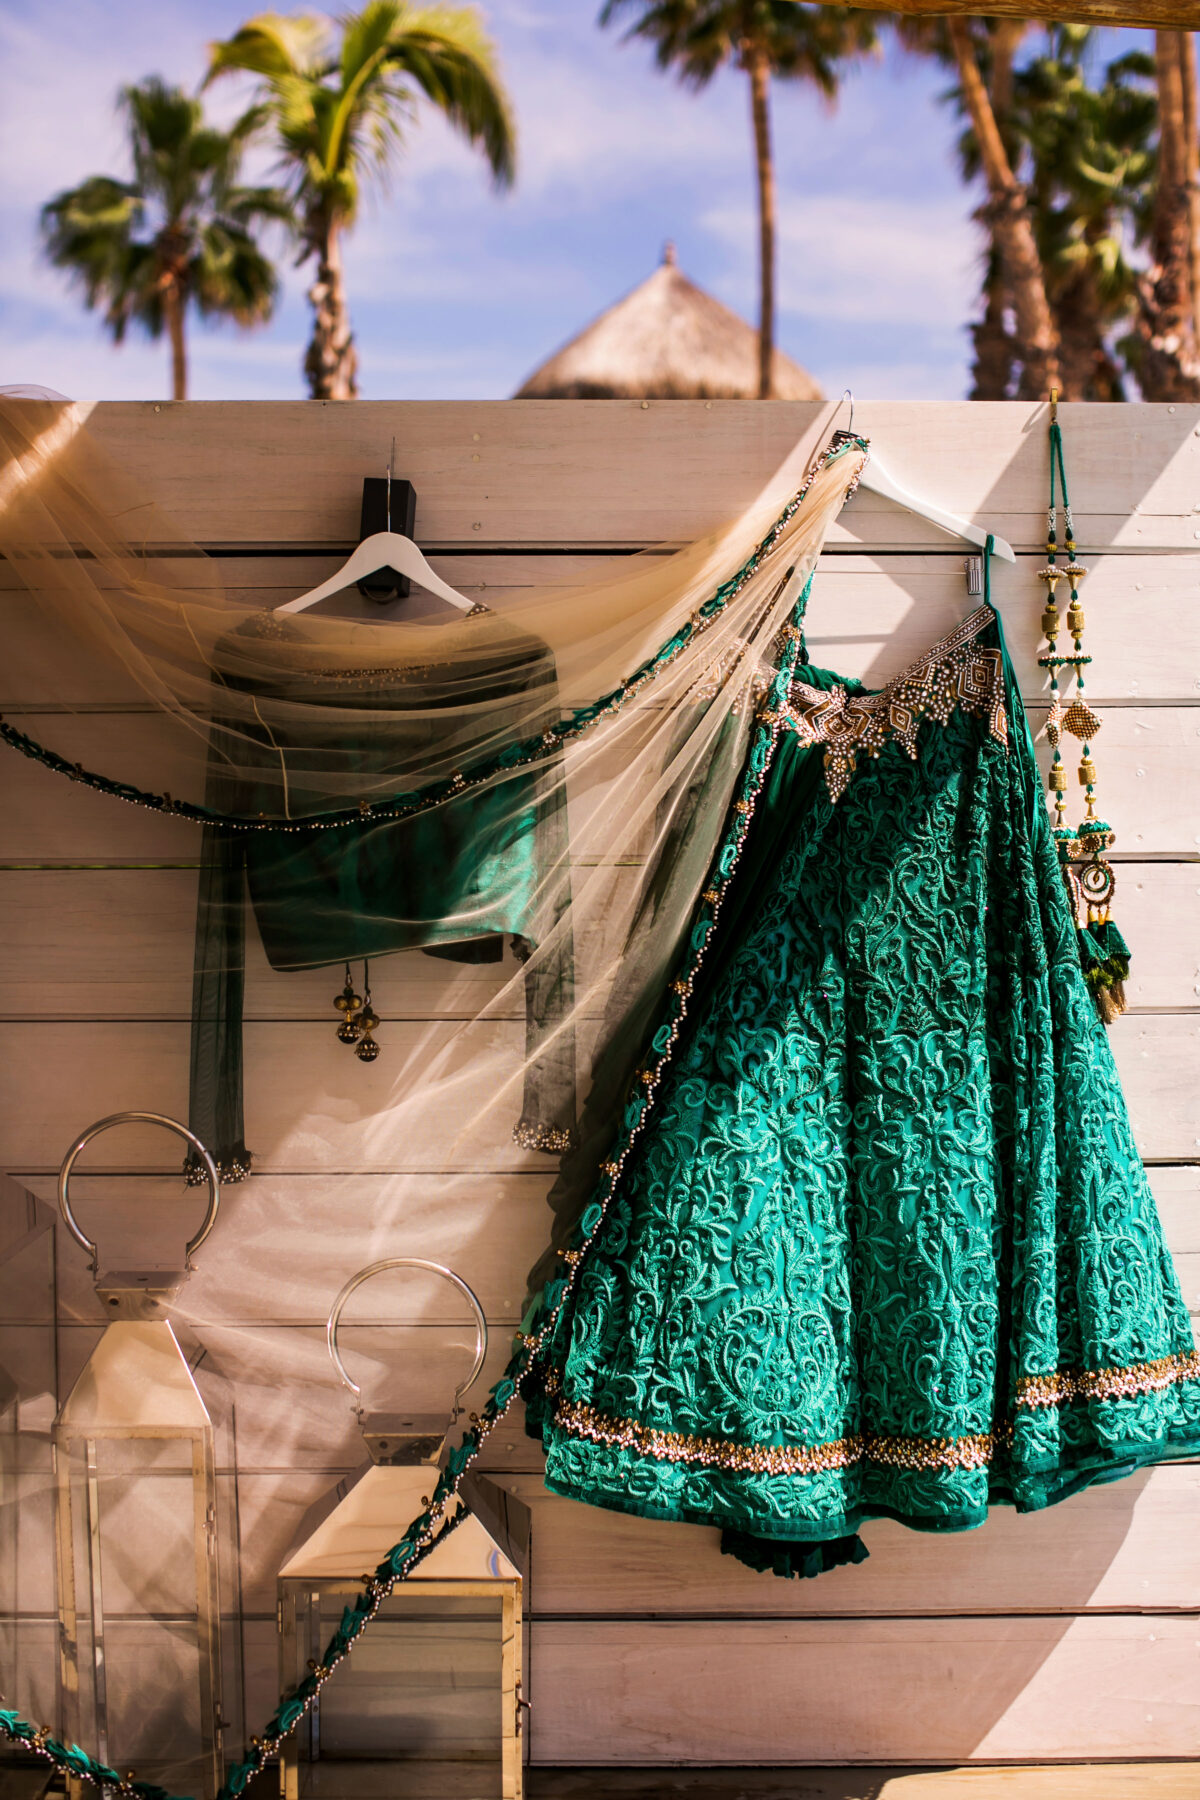 South Asian Bride Wedding Dress - Lehenga - Nadia D Photo